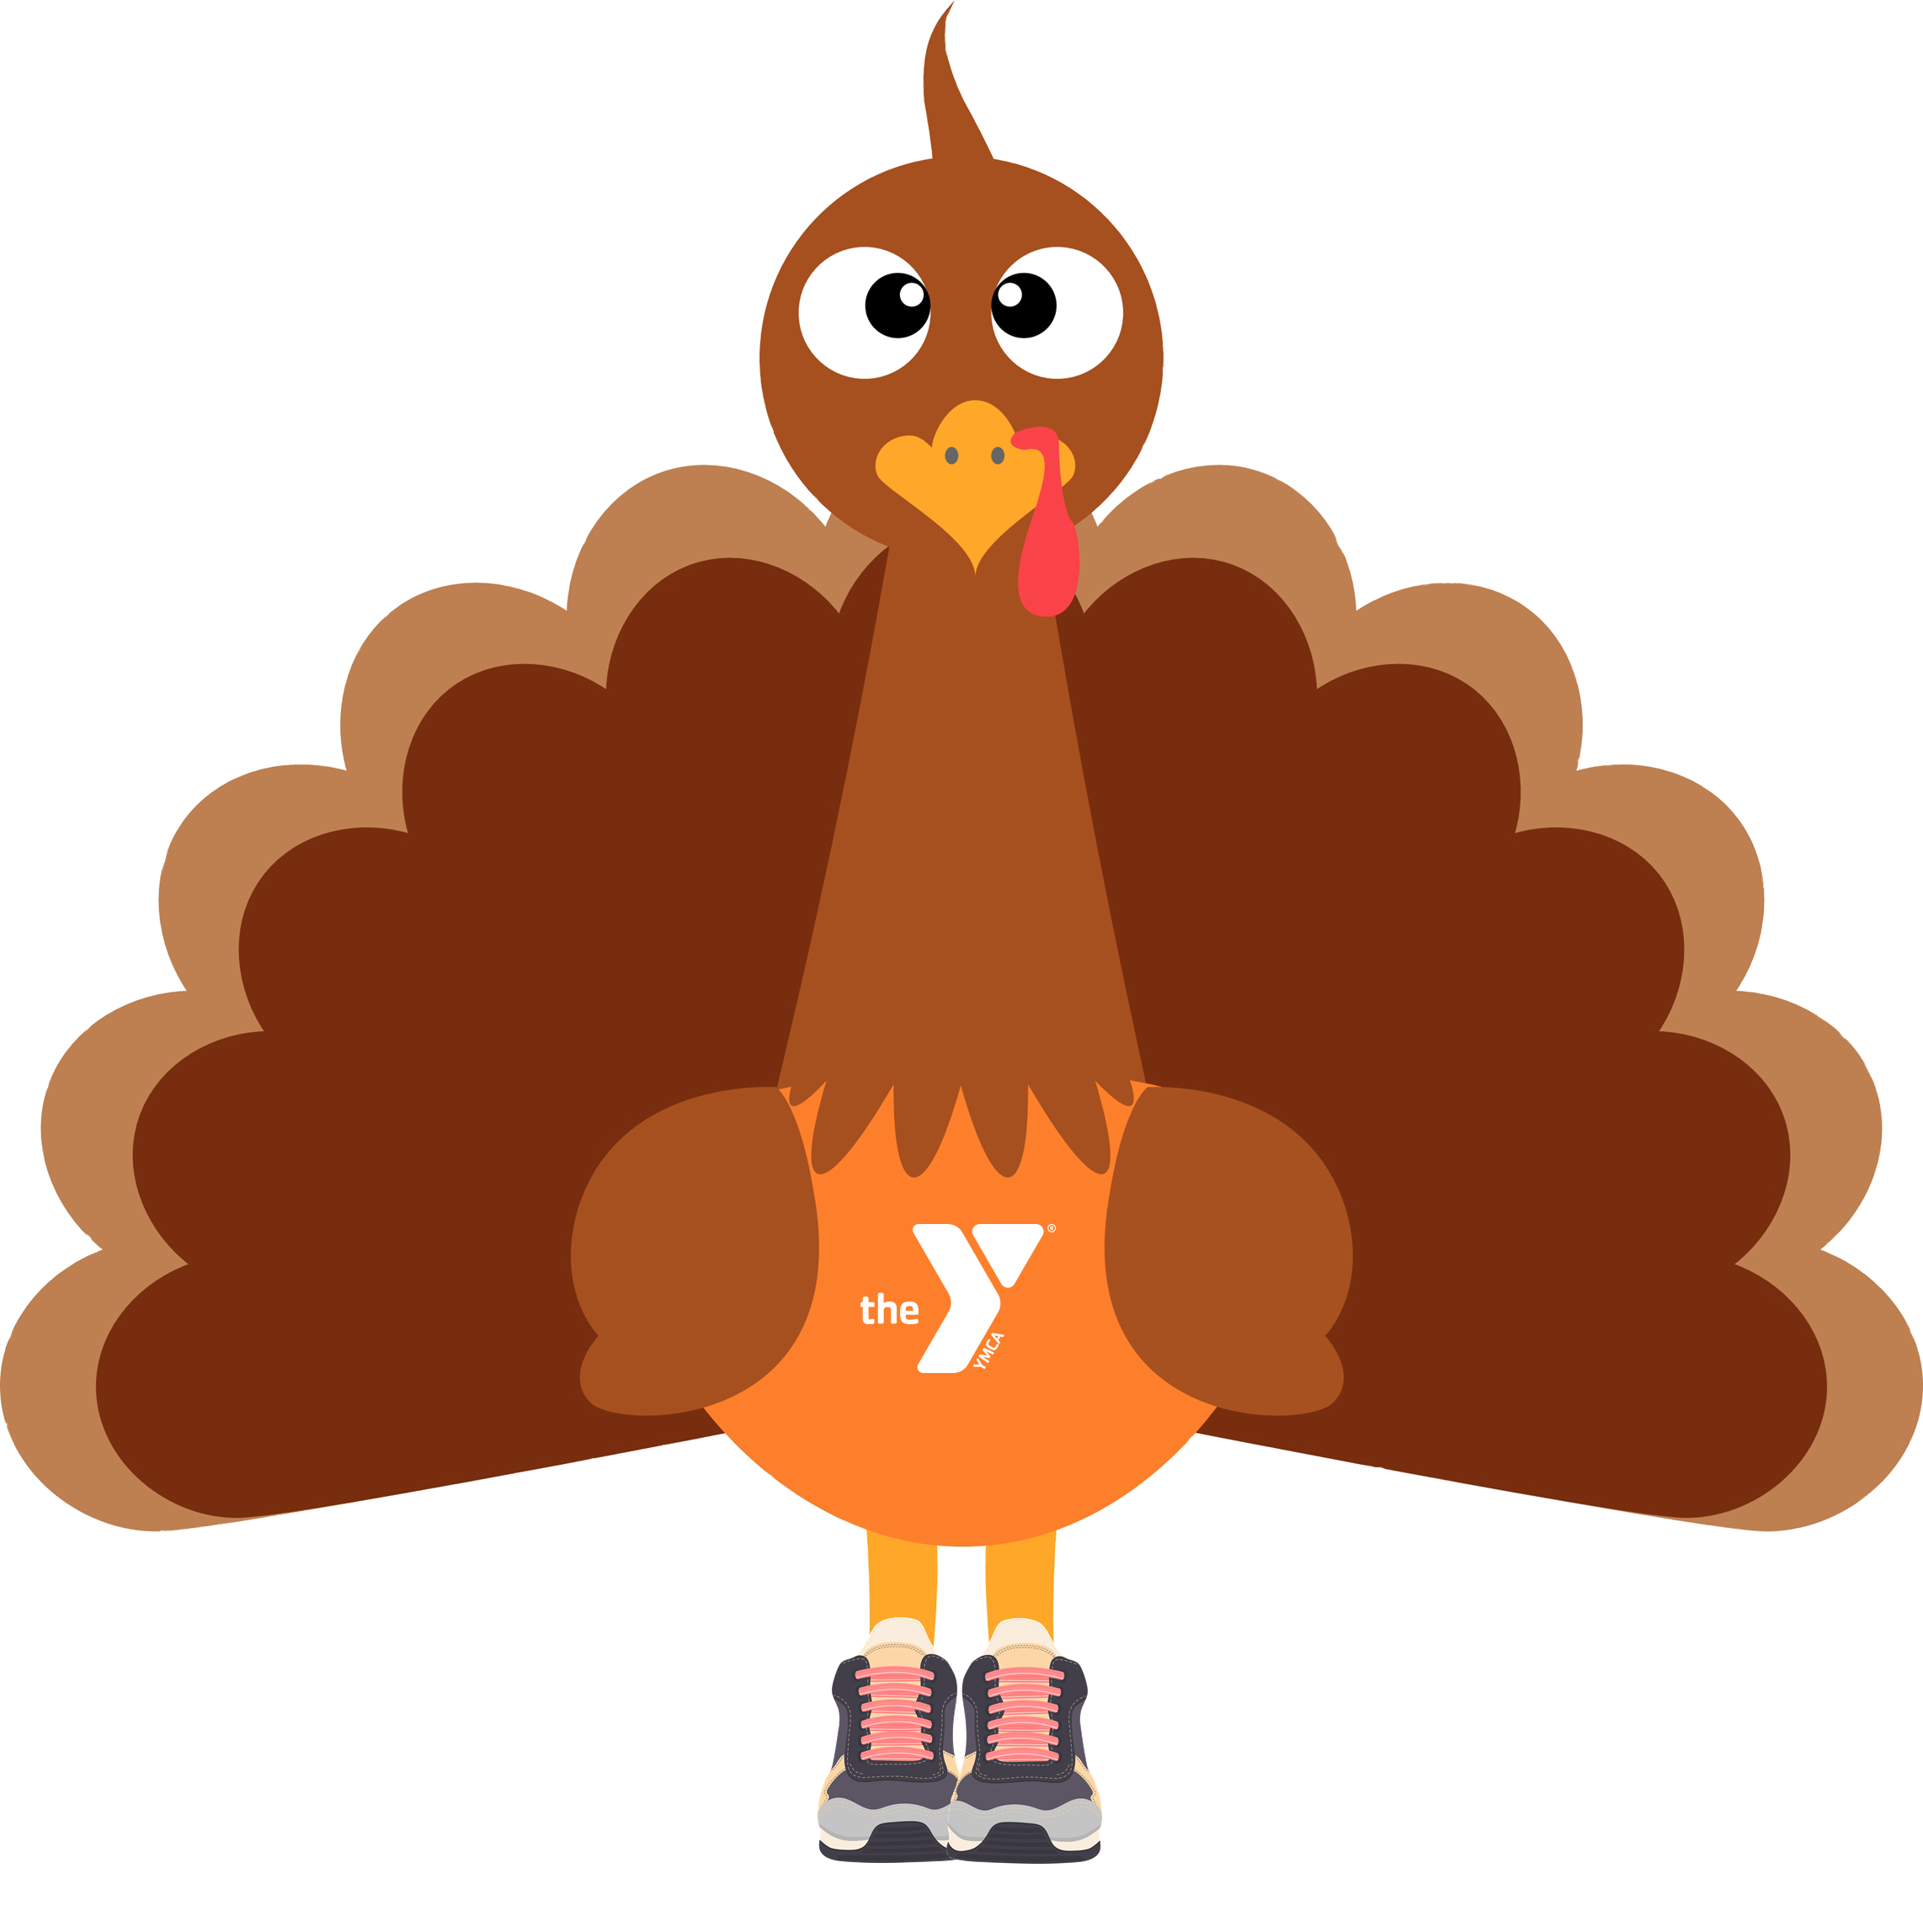 Thanksgiving turkey fitness clipart jpg royalty free download Turkey Trot 5K - Penobscot Bay YMCA jpg royalty free download